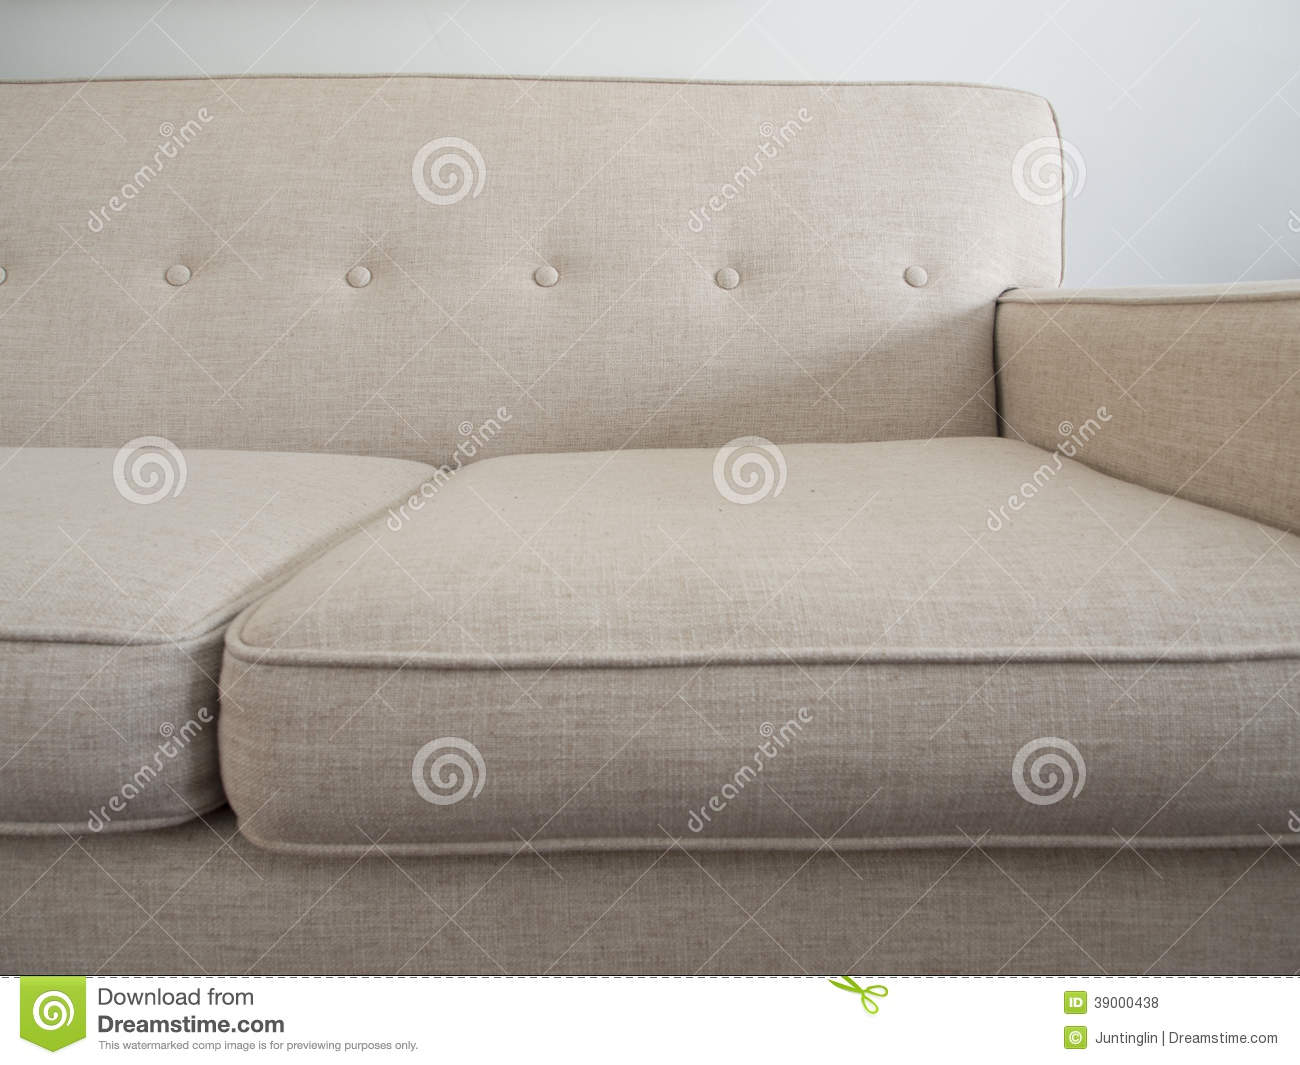 modern sofa colors innovation dunckerstrase berlin mid century beige color stock photo image